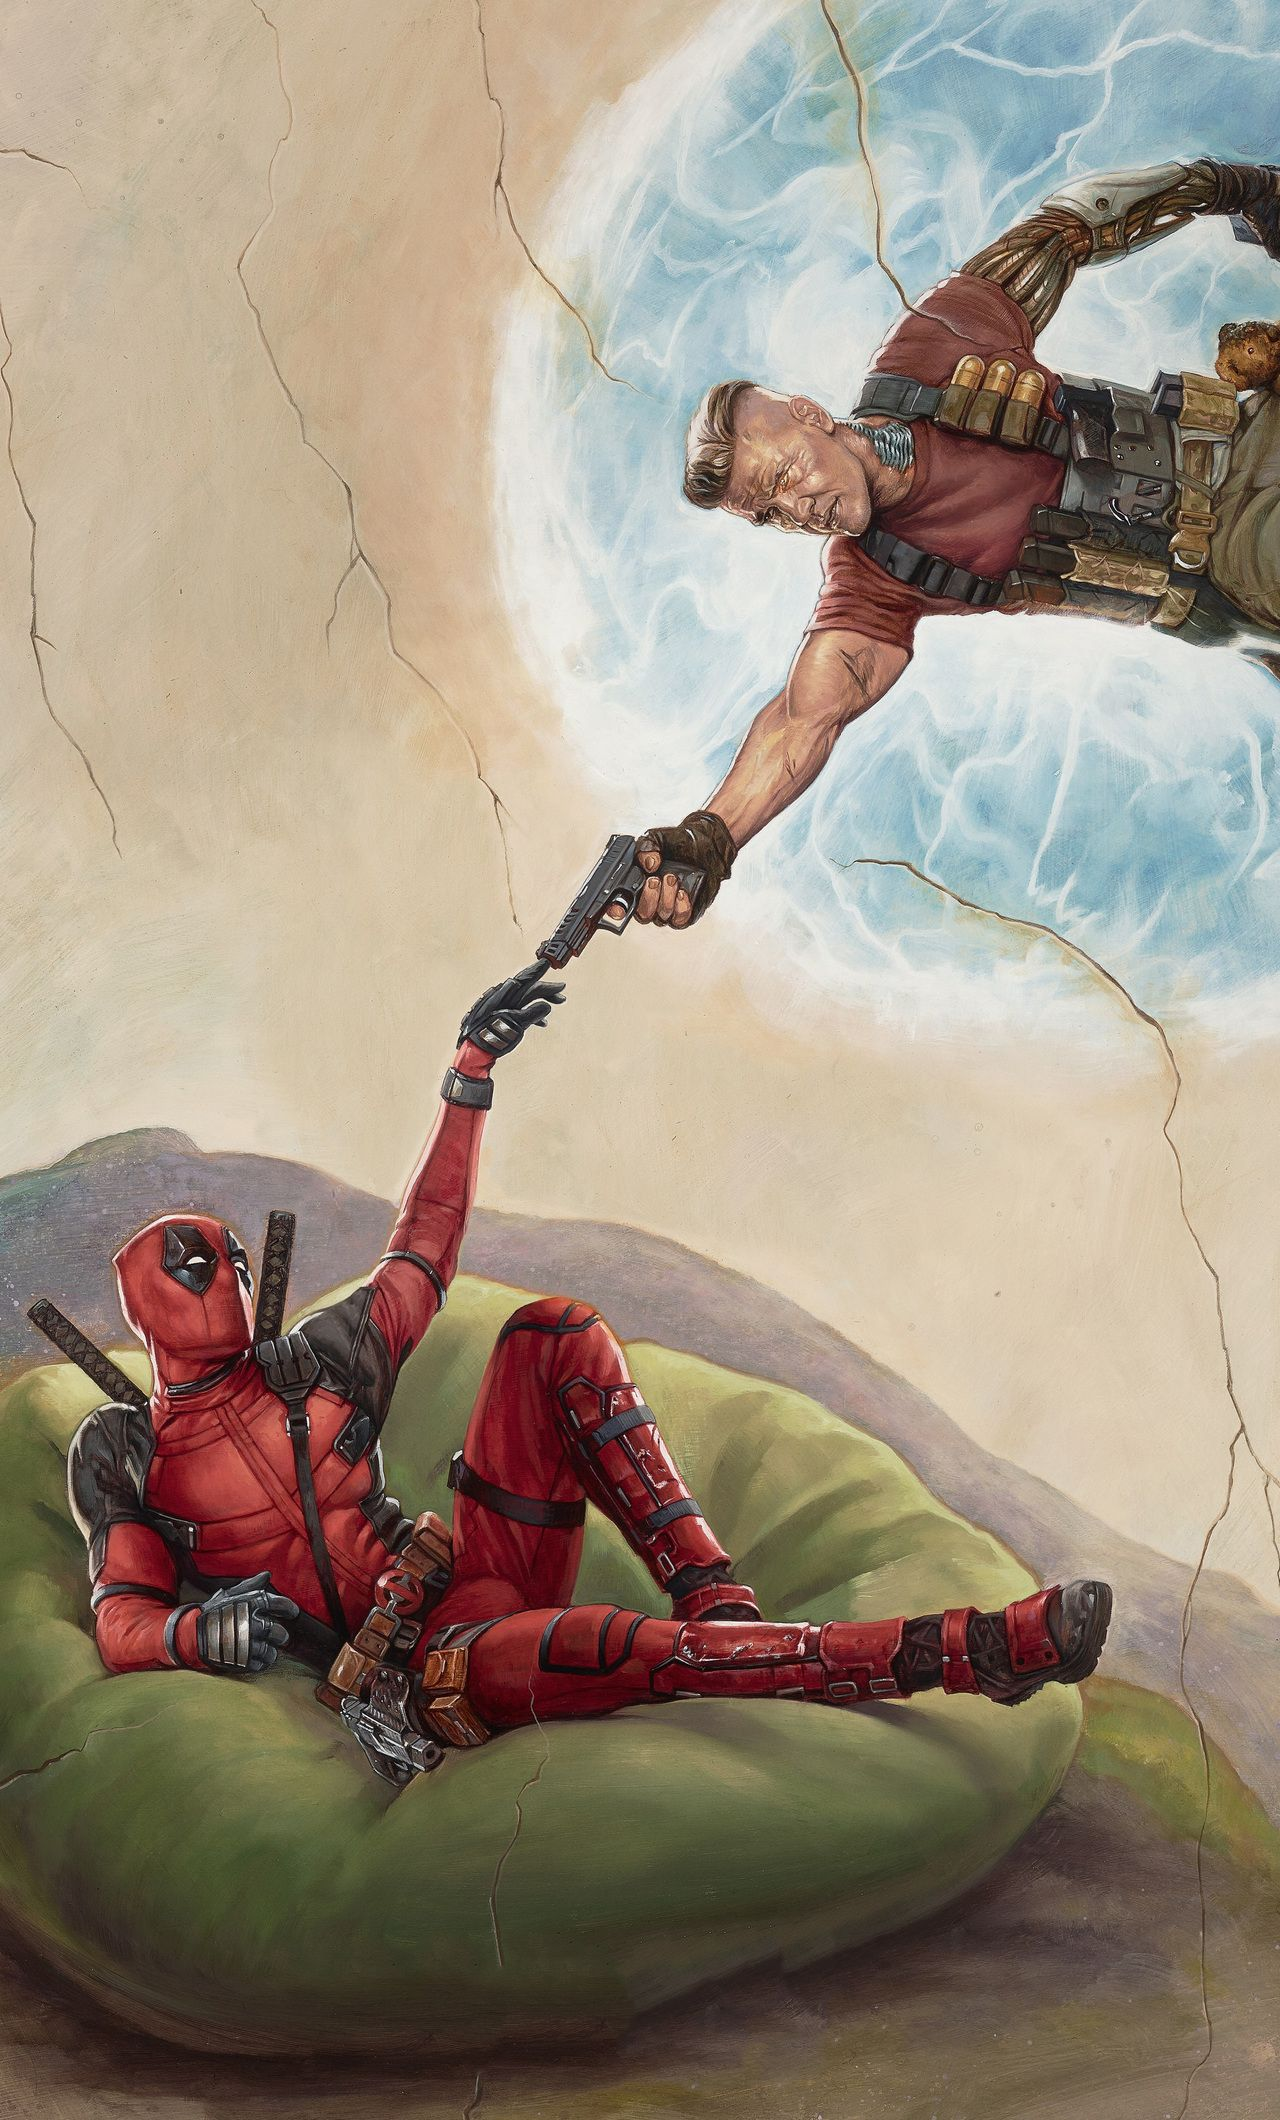 1280x2120 1280x2120 Deadpool 2 2018 Movie Poster iPhone 6+ HD 4k Wallpapers ...